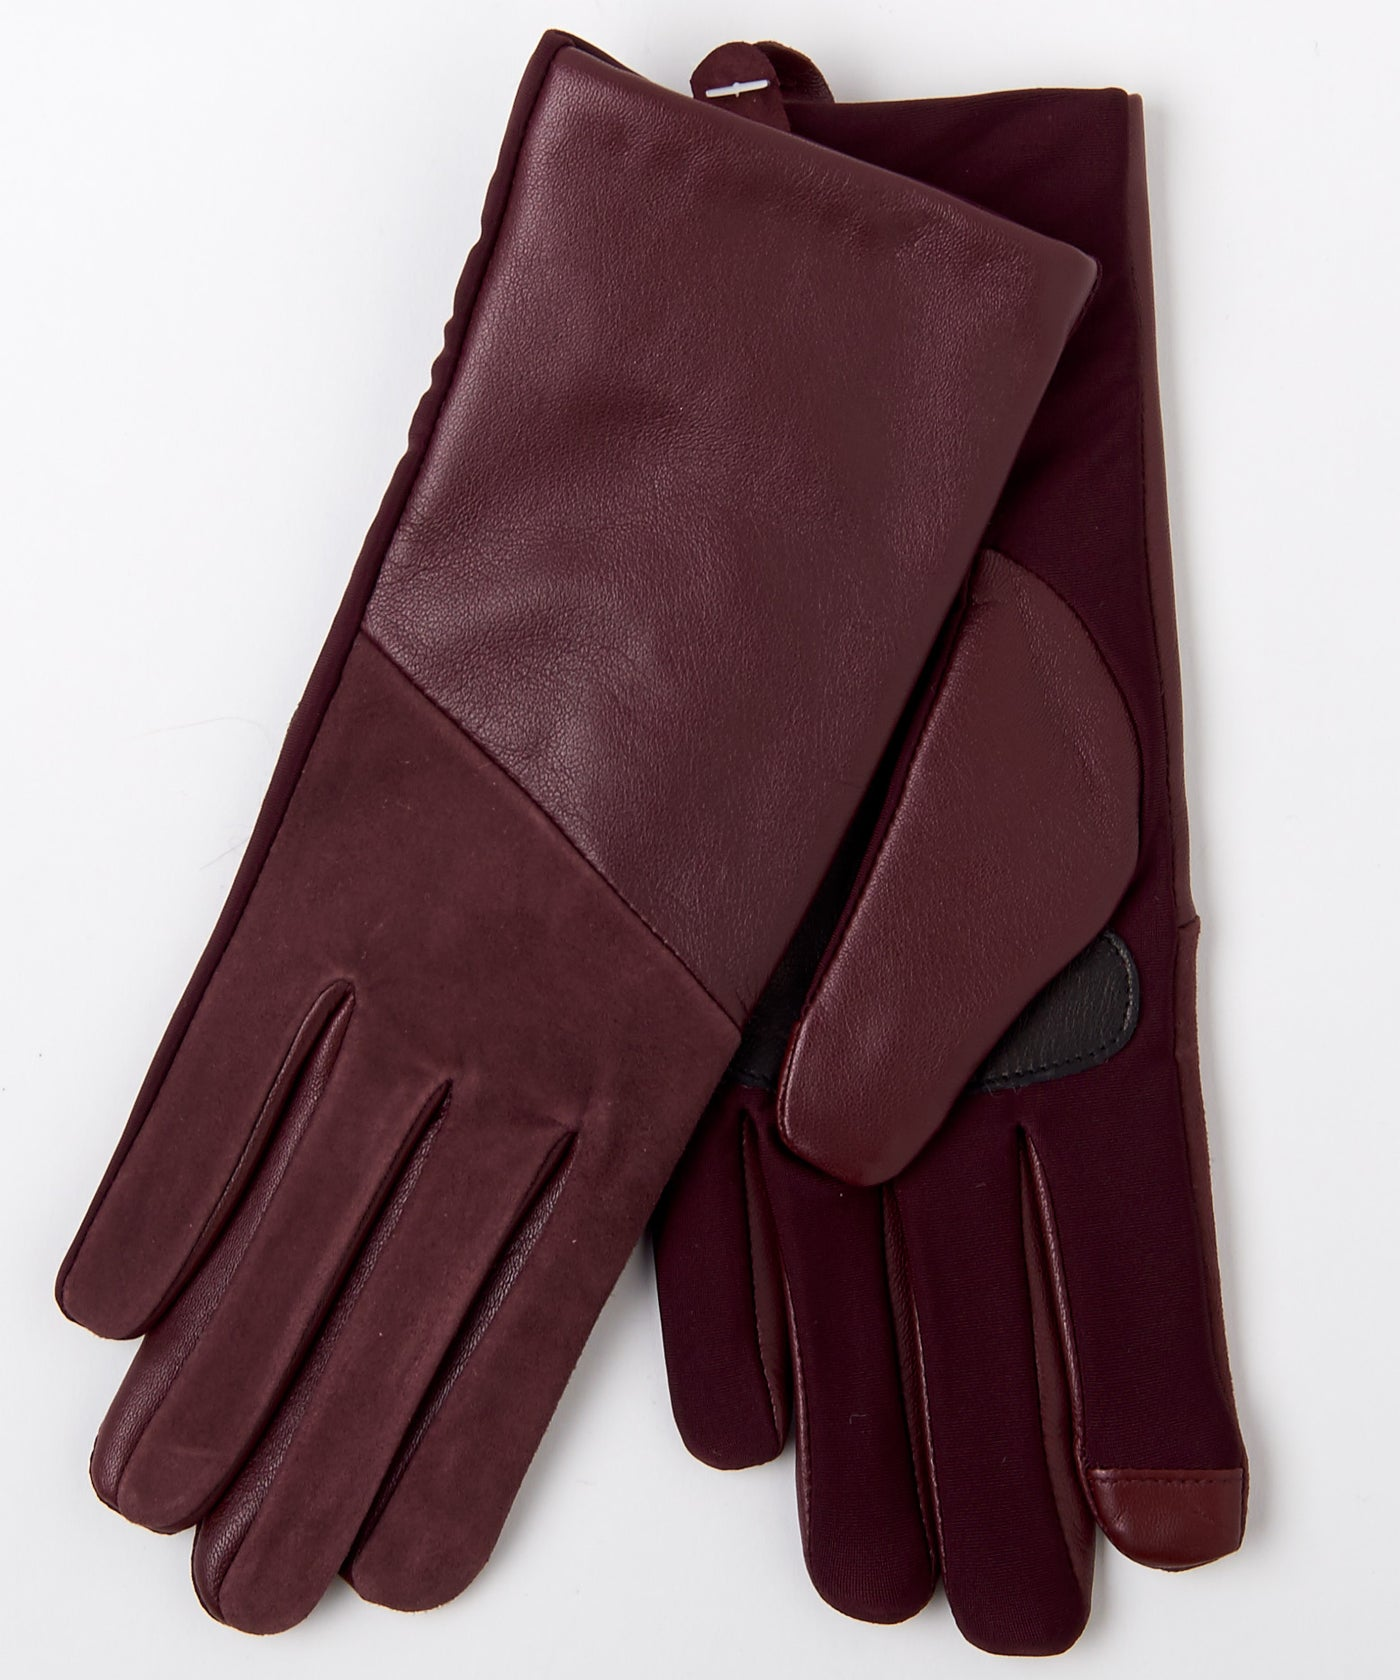 Leather Superfit Gloves